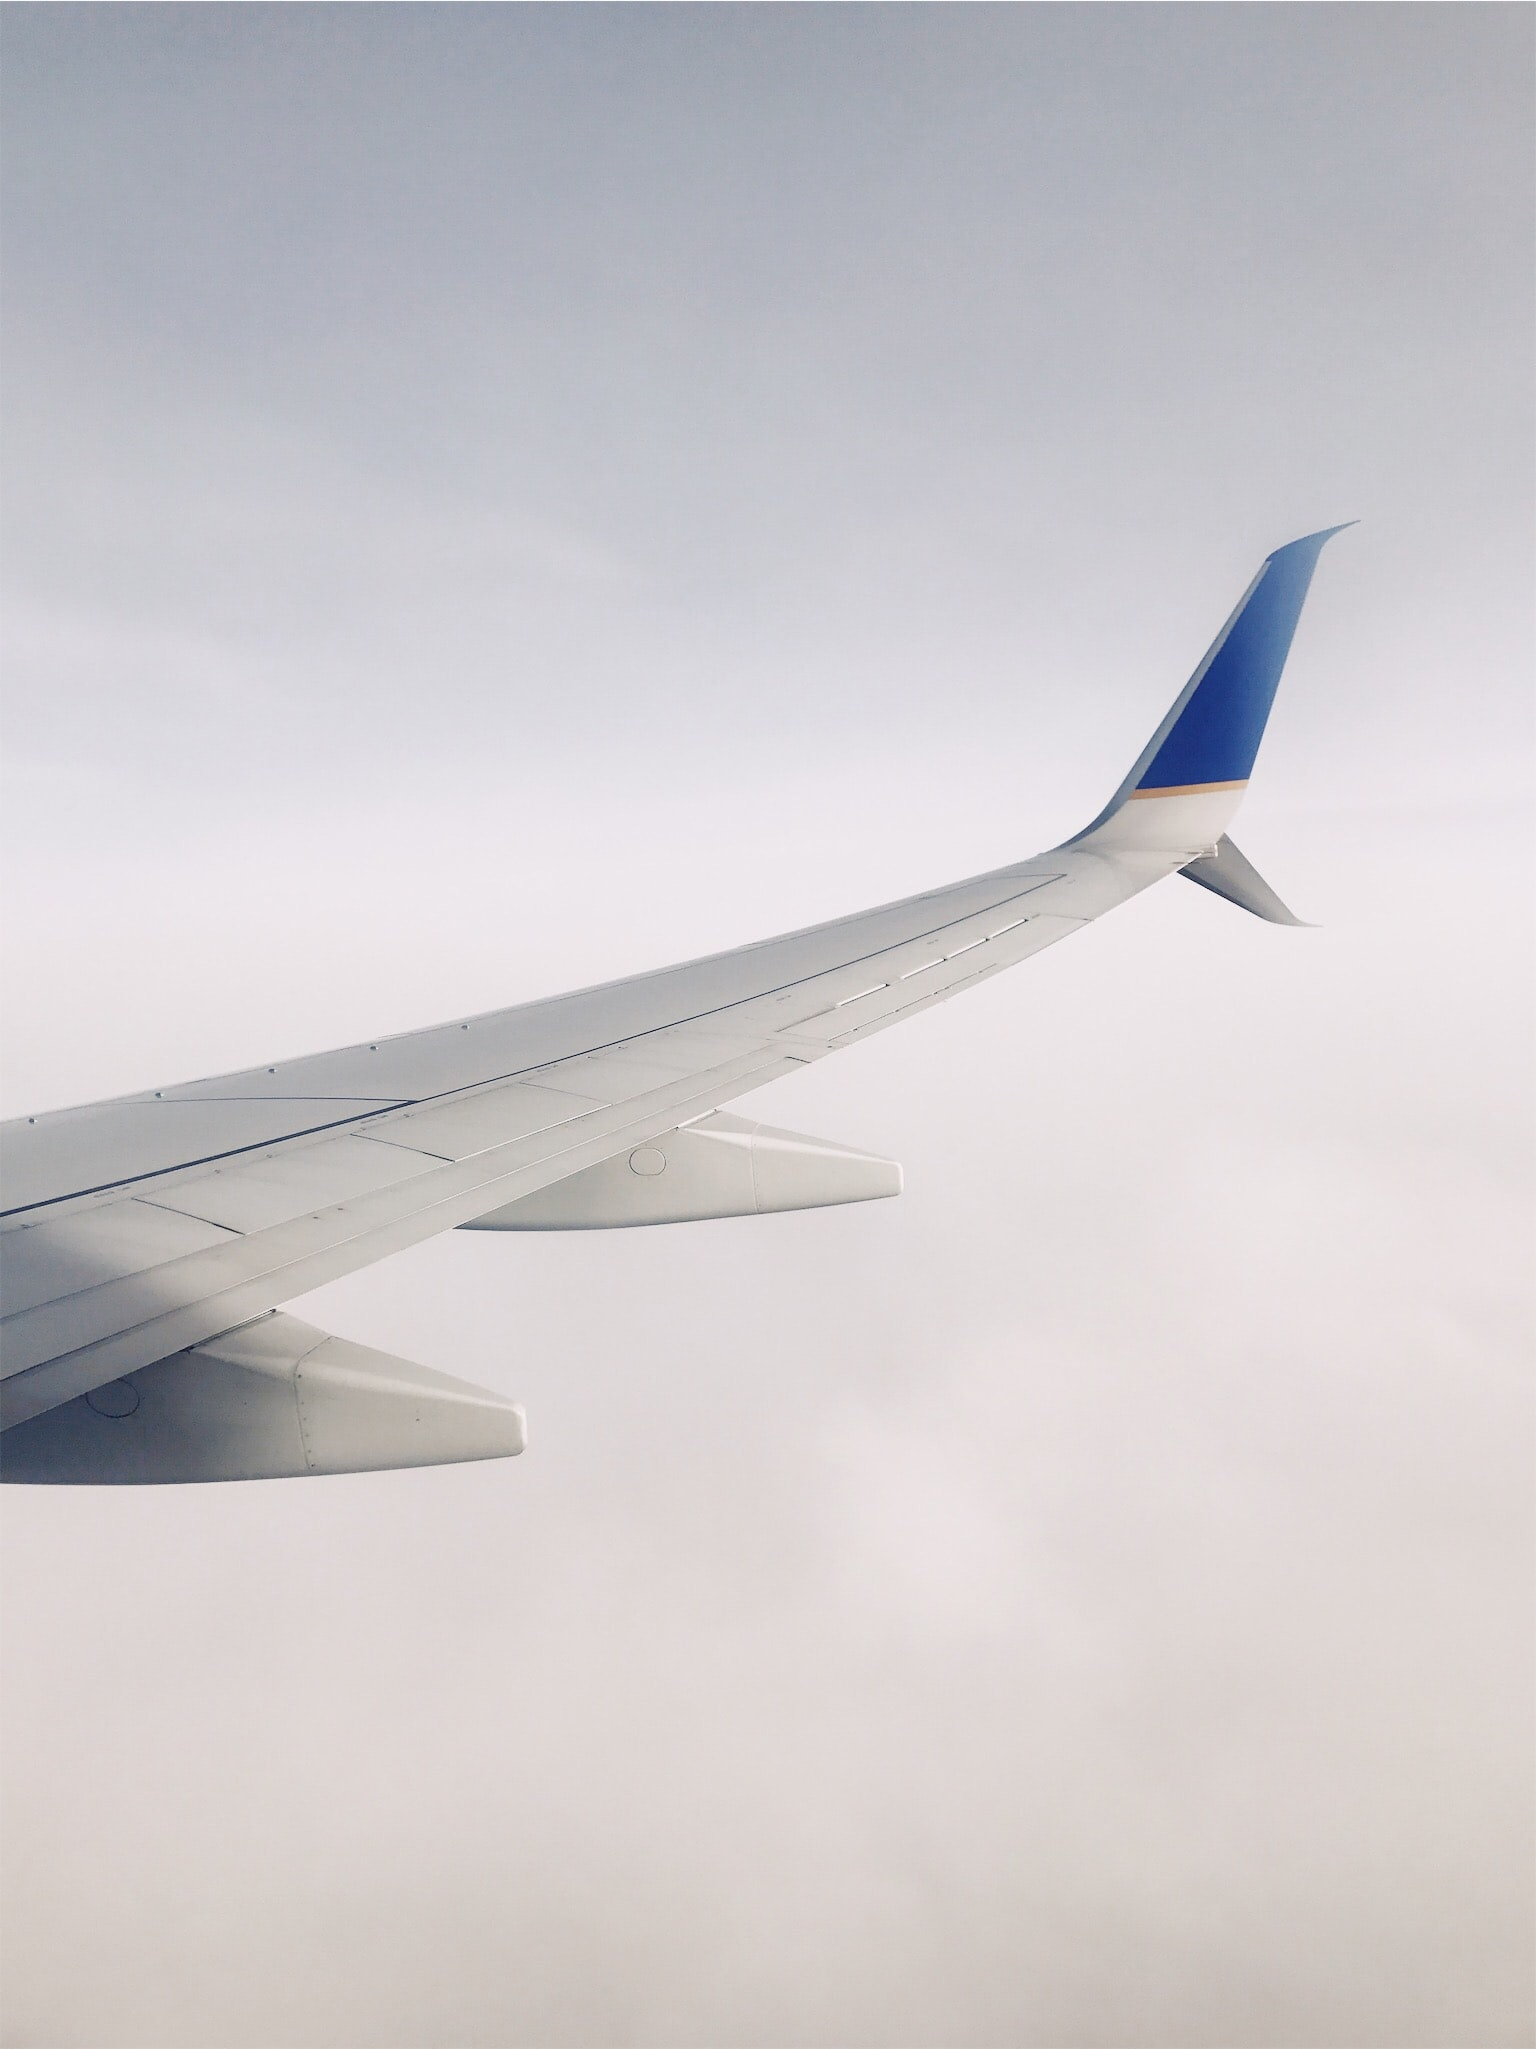 A view from an airplane window on the plane's wing and thick clouds below